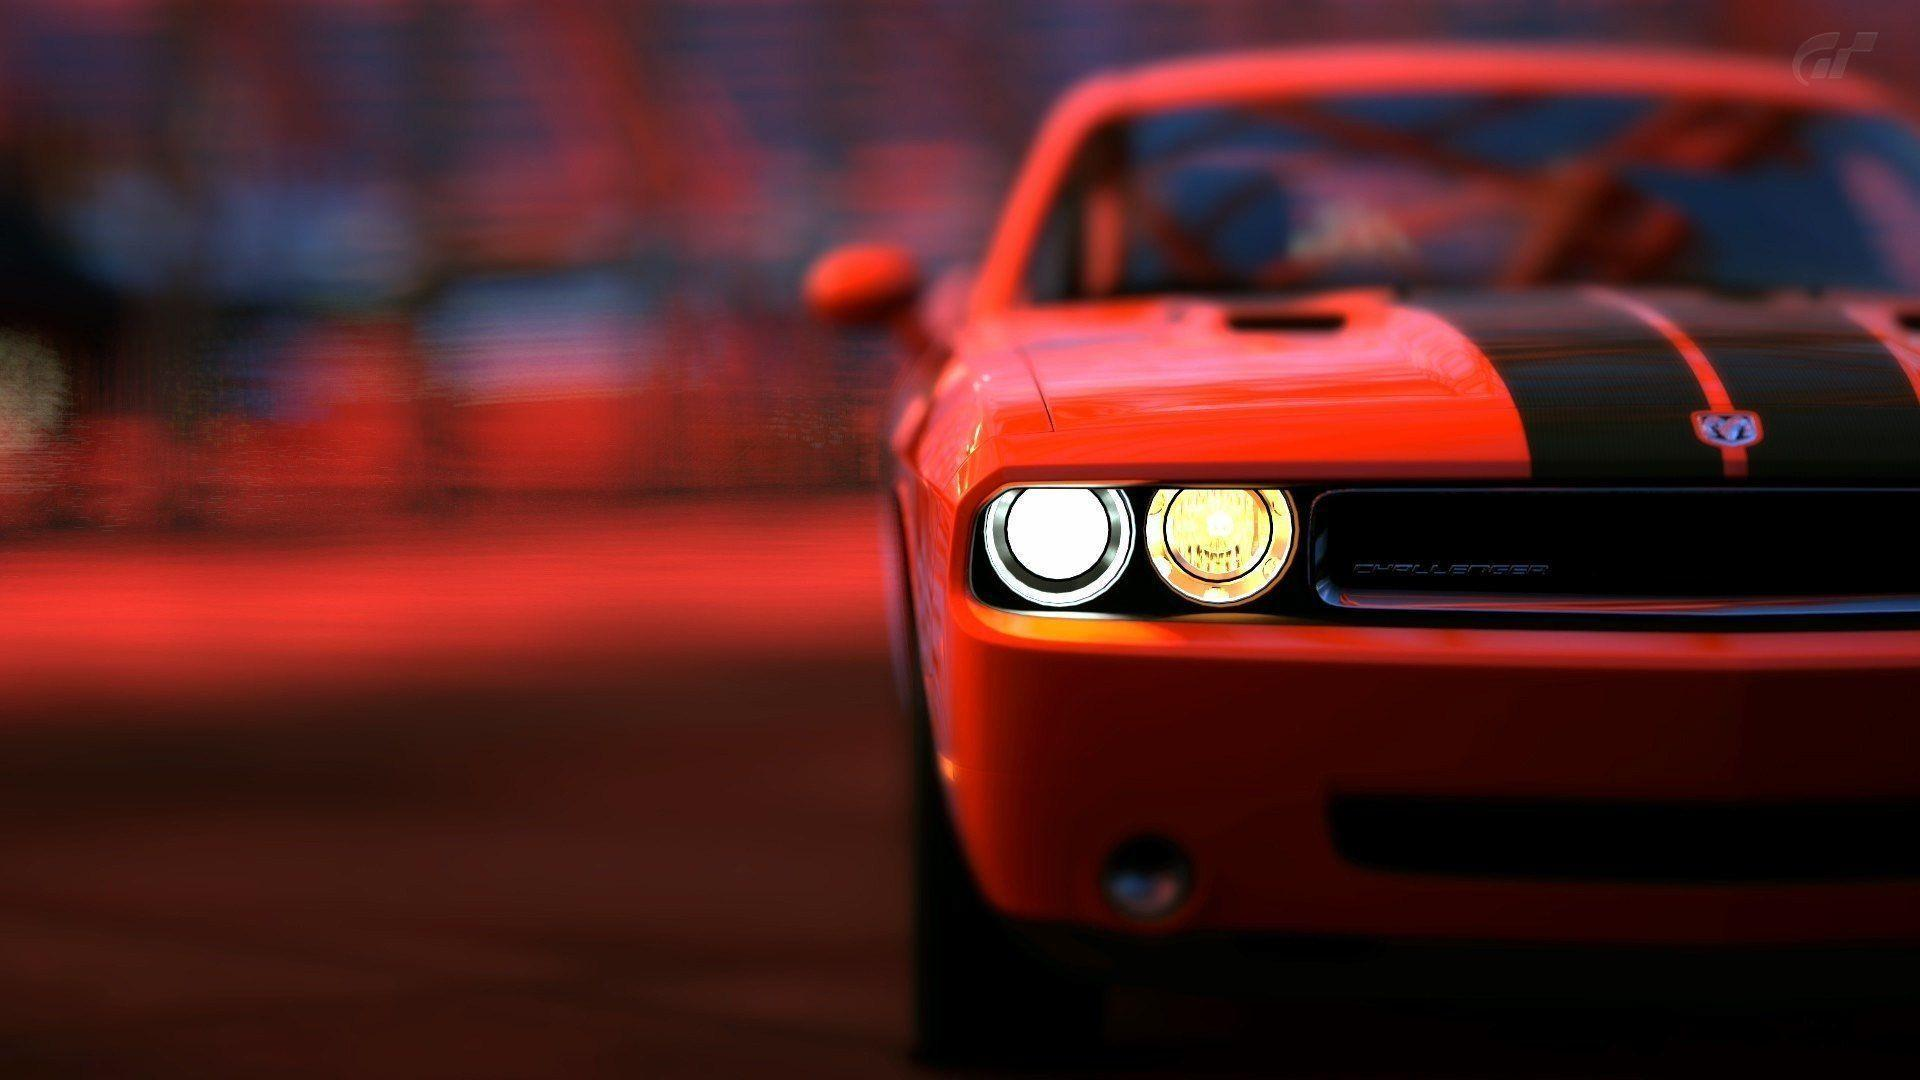 Dodge Challenger Hd Wallpapers Wallpaper Cave